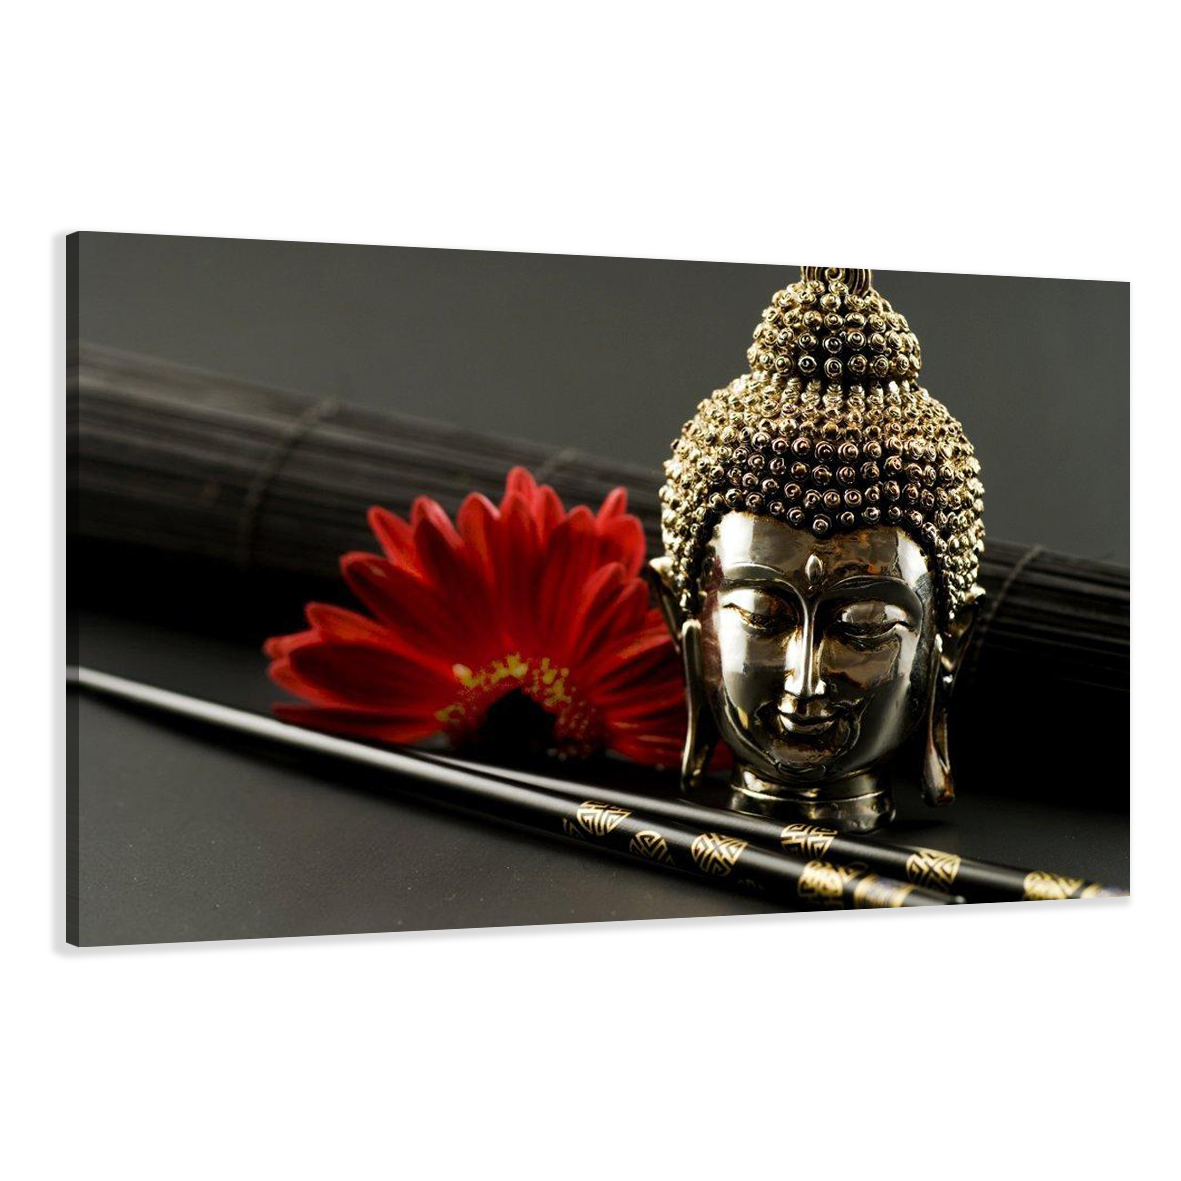 bilder auf leinwand buddha 120x80cm xxl 5043 alle wandbilder fertig gerahmt ebay. Black Bedroom Furniture Sets. Home Design Ideas